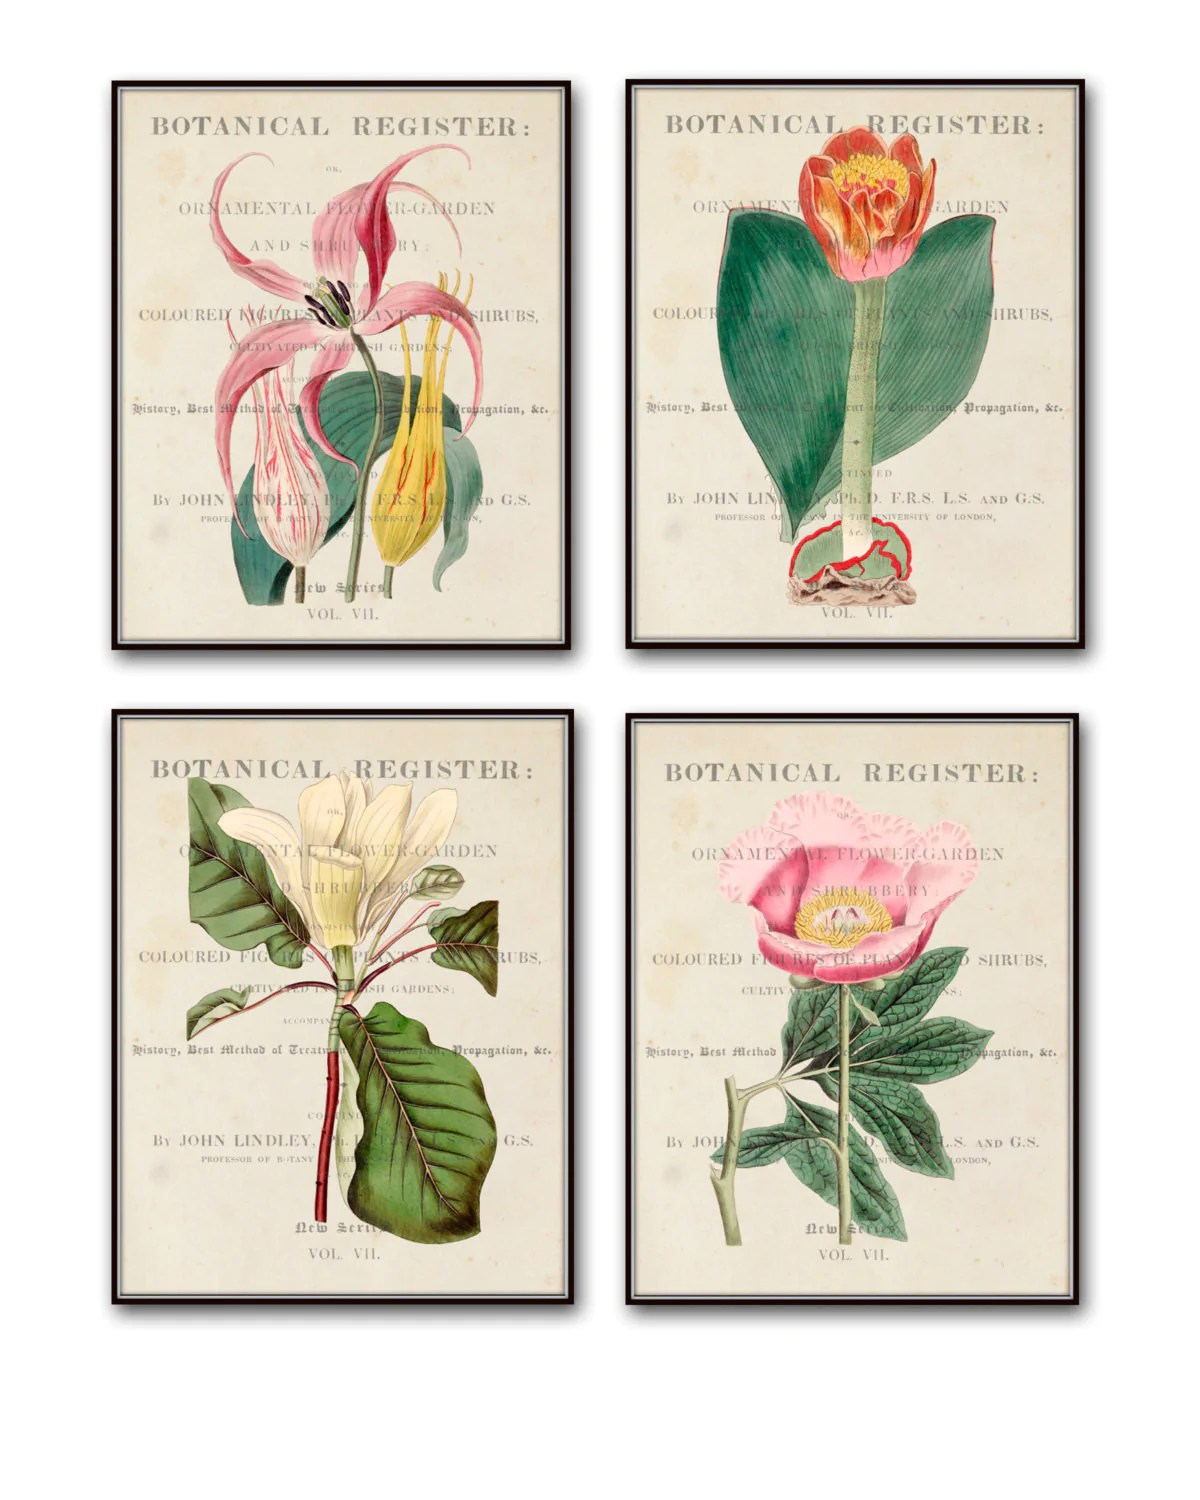 Wall Art Prints And Posters Vintage Botanical Print Set No 12 Giclee Canvas Art Prints Antique Botanical Prints Wall Art Prints Posters Botanical Print Sets